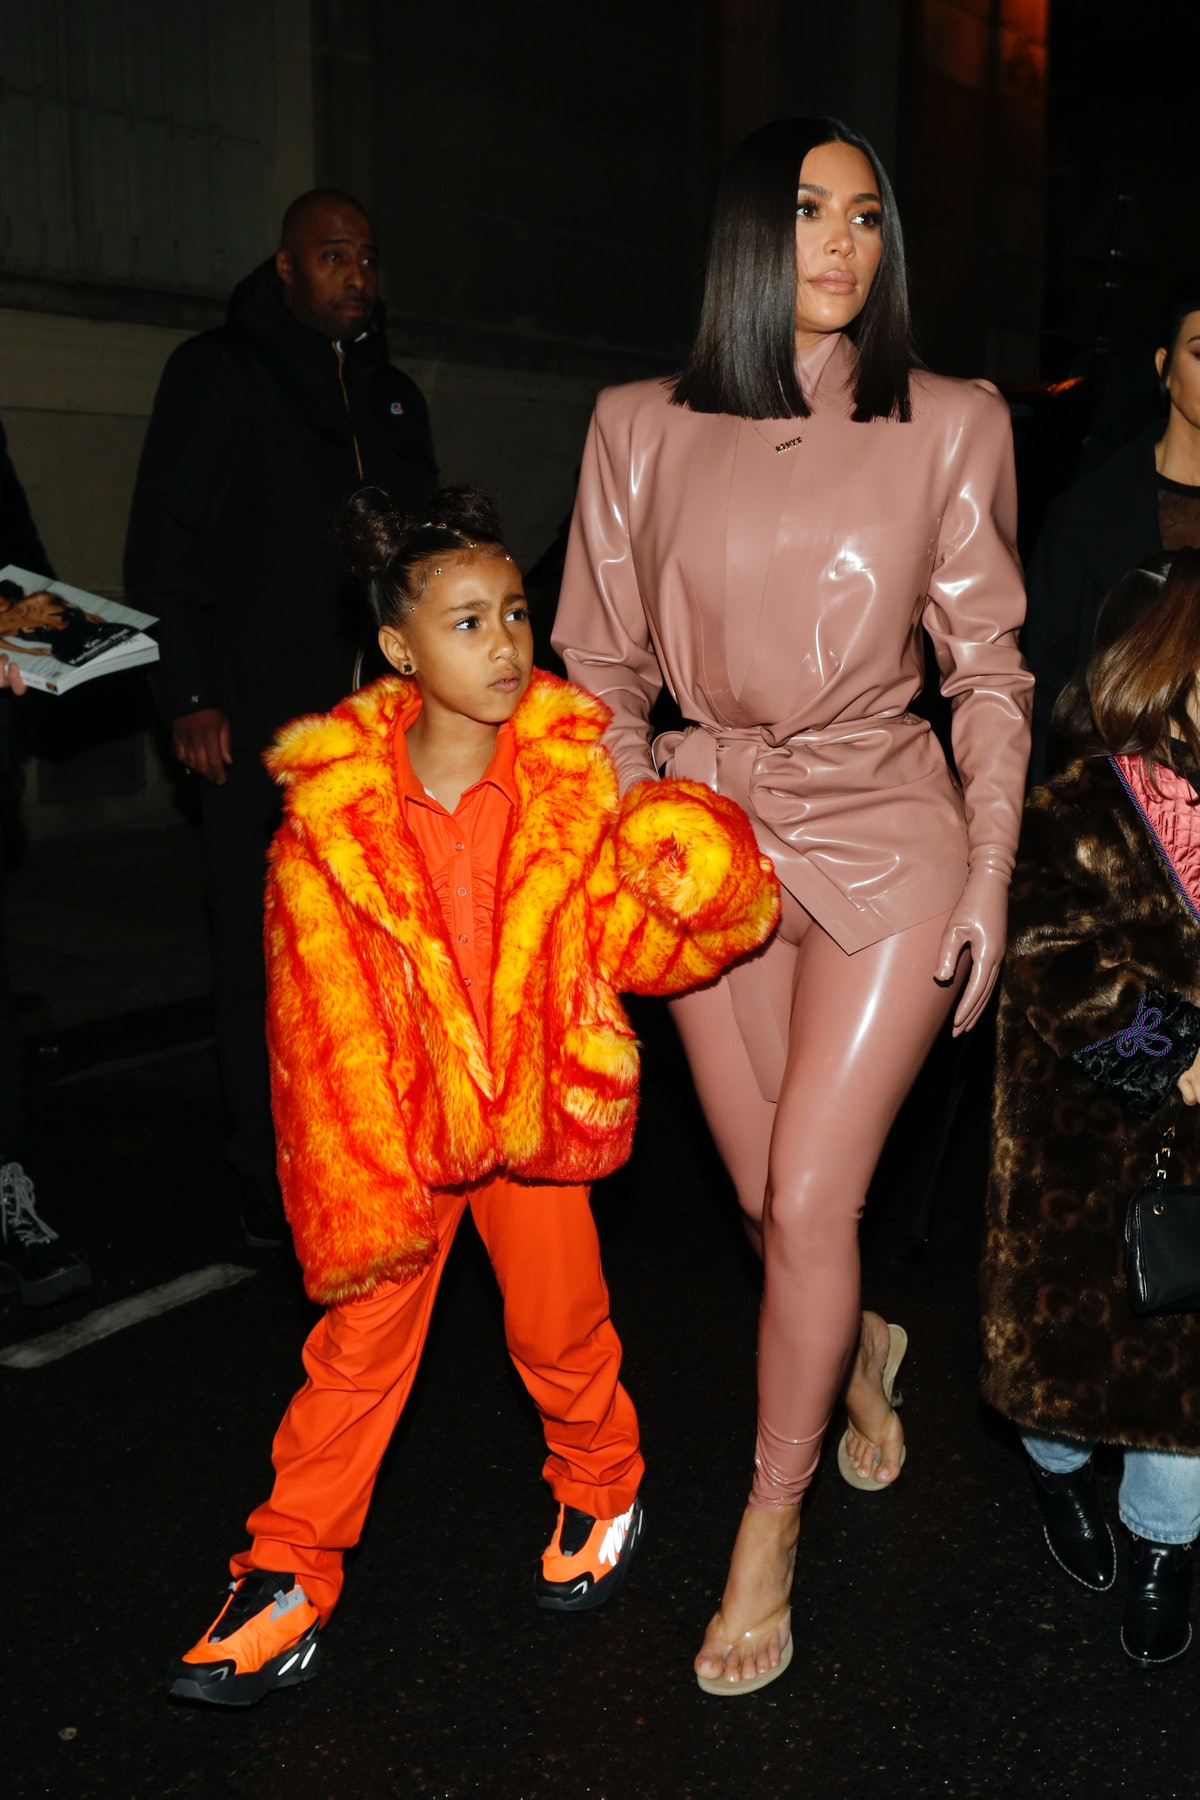 Kim Kardashian and daughter North West arrive at the Ferdi restaurant on March 01, 2020 in Paris, France. (Photo by Mehdi Taamallah/NurPhoto via Getty Images)